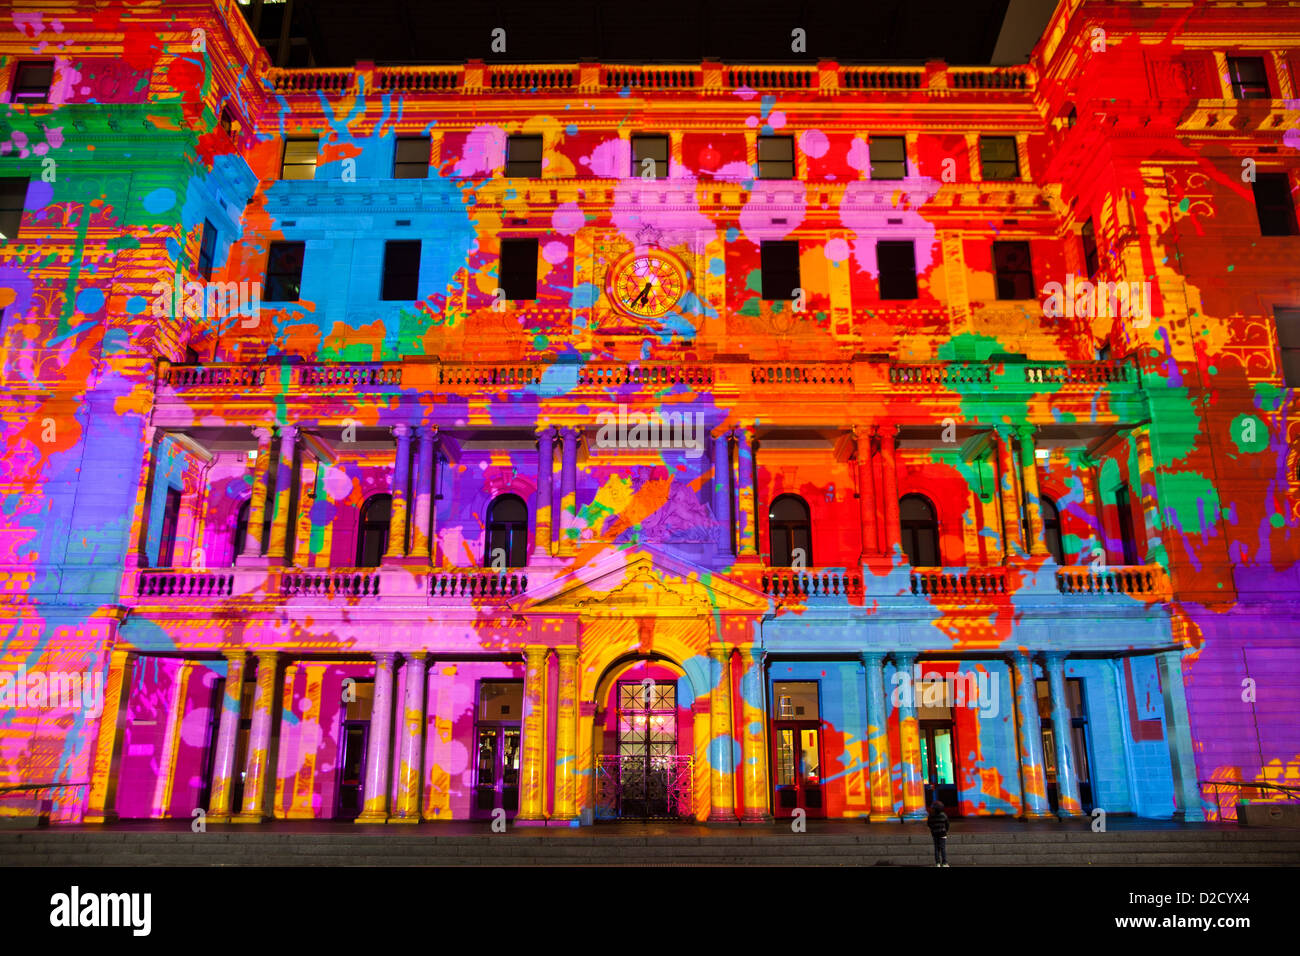 Vivid Sydney 2011 light show  Sydney Customs House projection light show 'Unfamiliar Customs' on the iconic sandstone Stock Photo